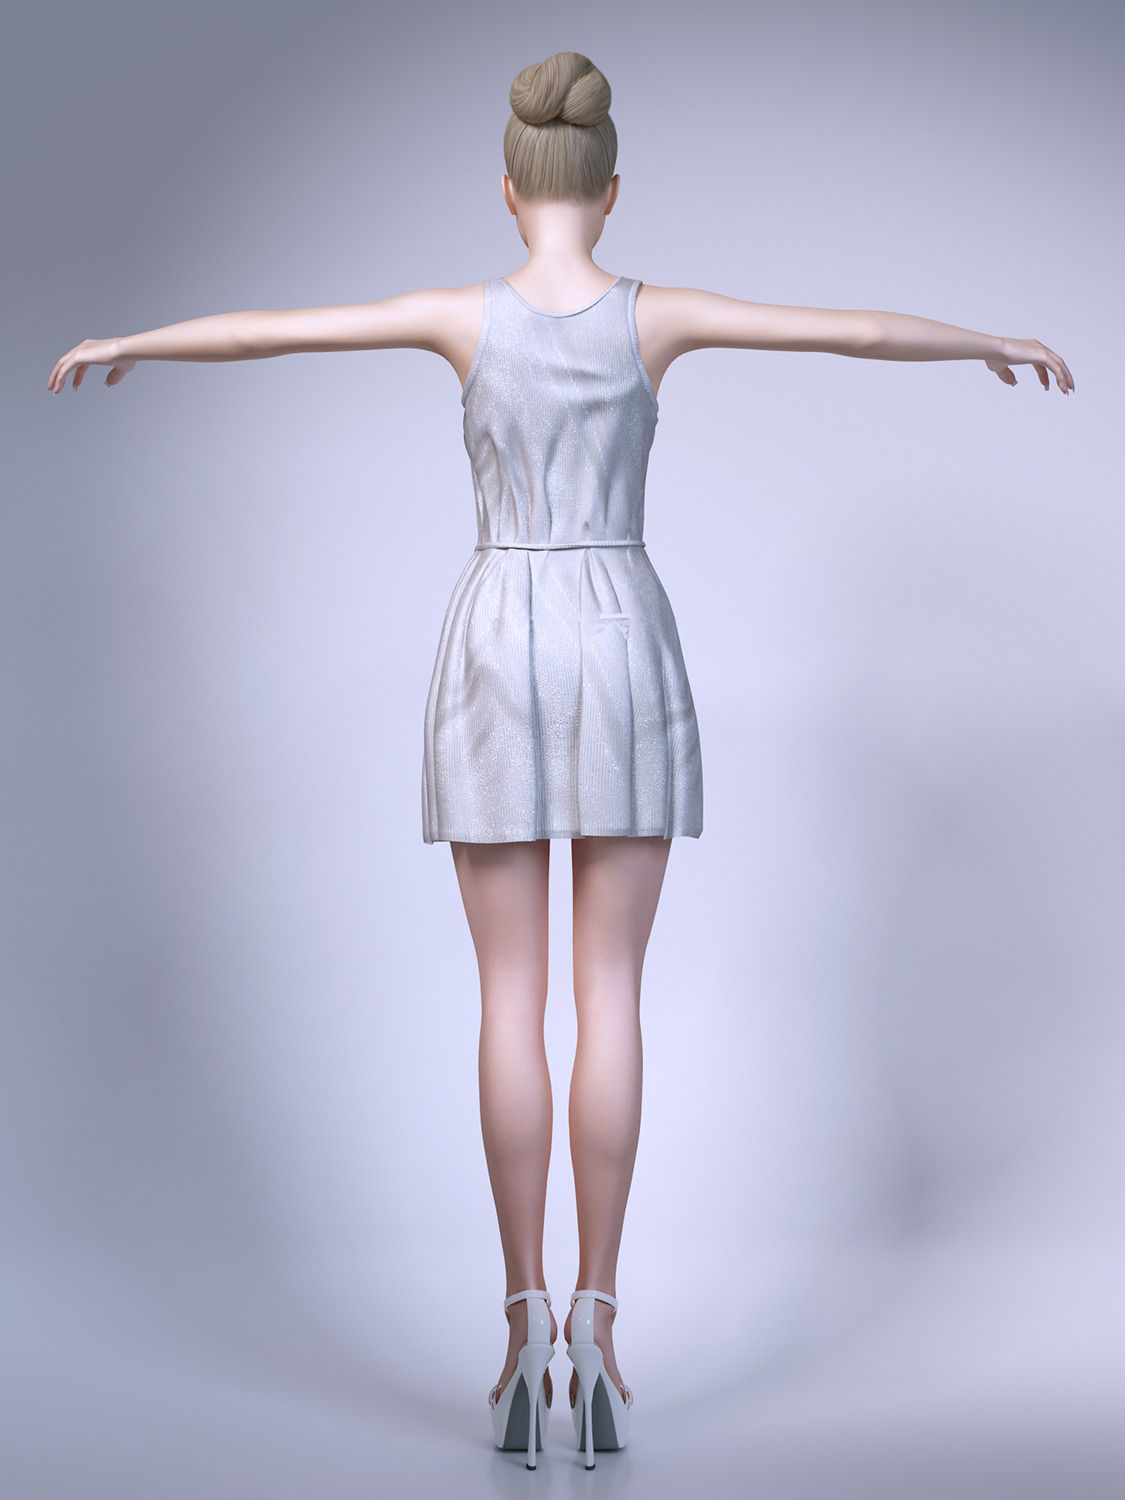 3d Models For Poser And Daz Studio: Girl Wearing Summer Dresses 3D Model MAX OBJ FBX